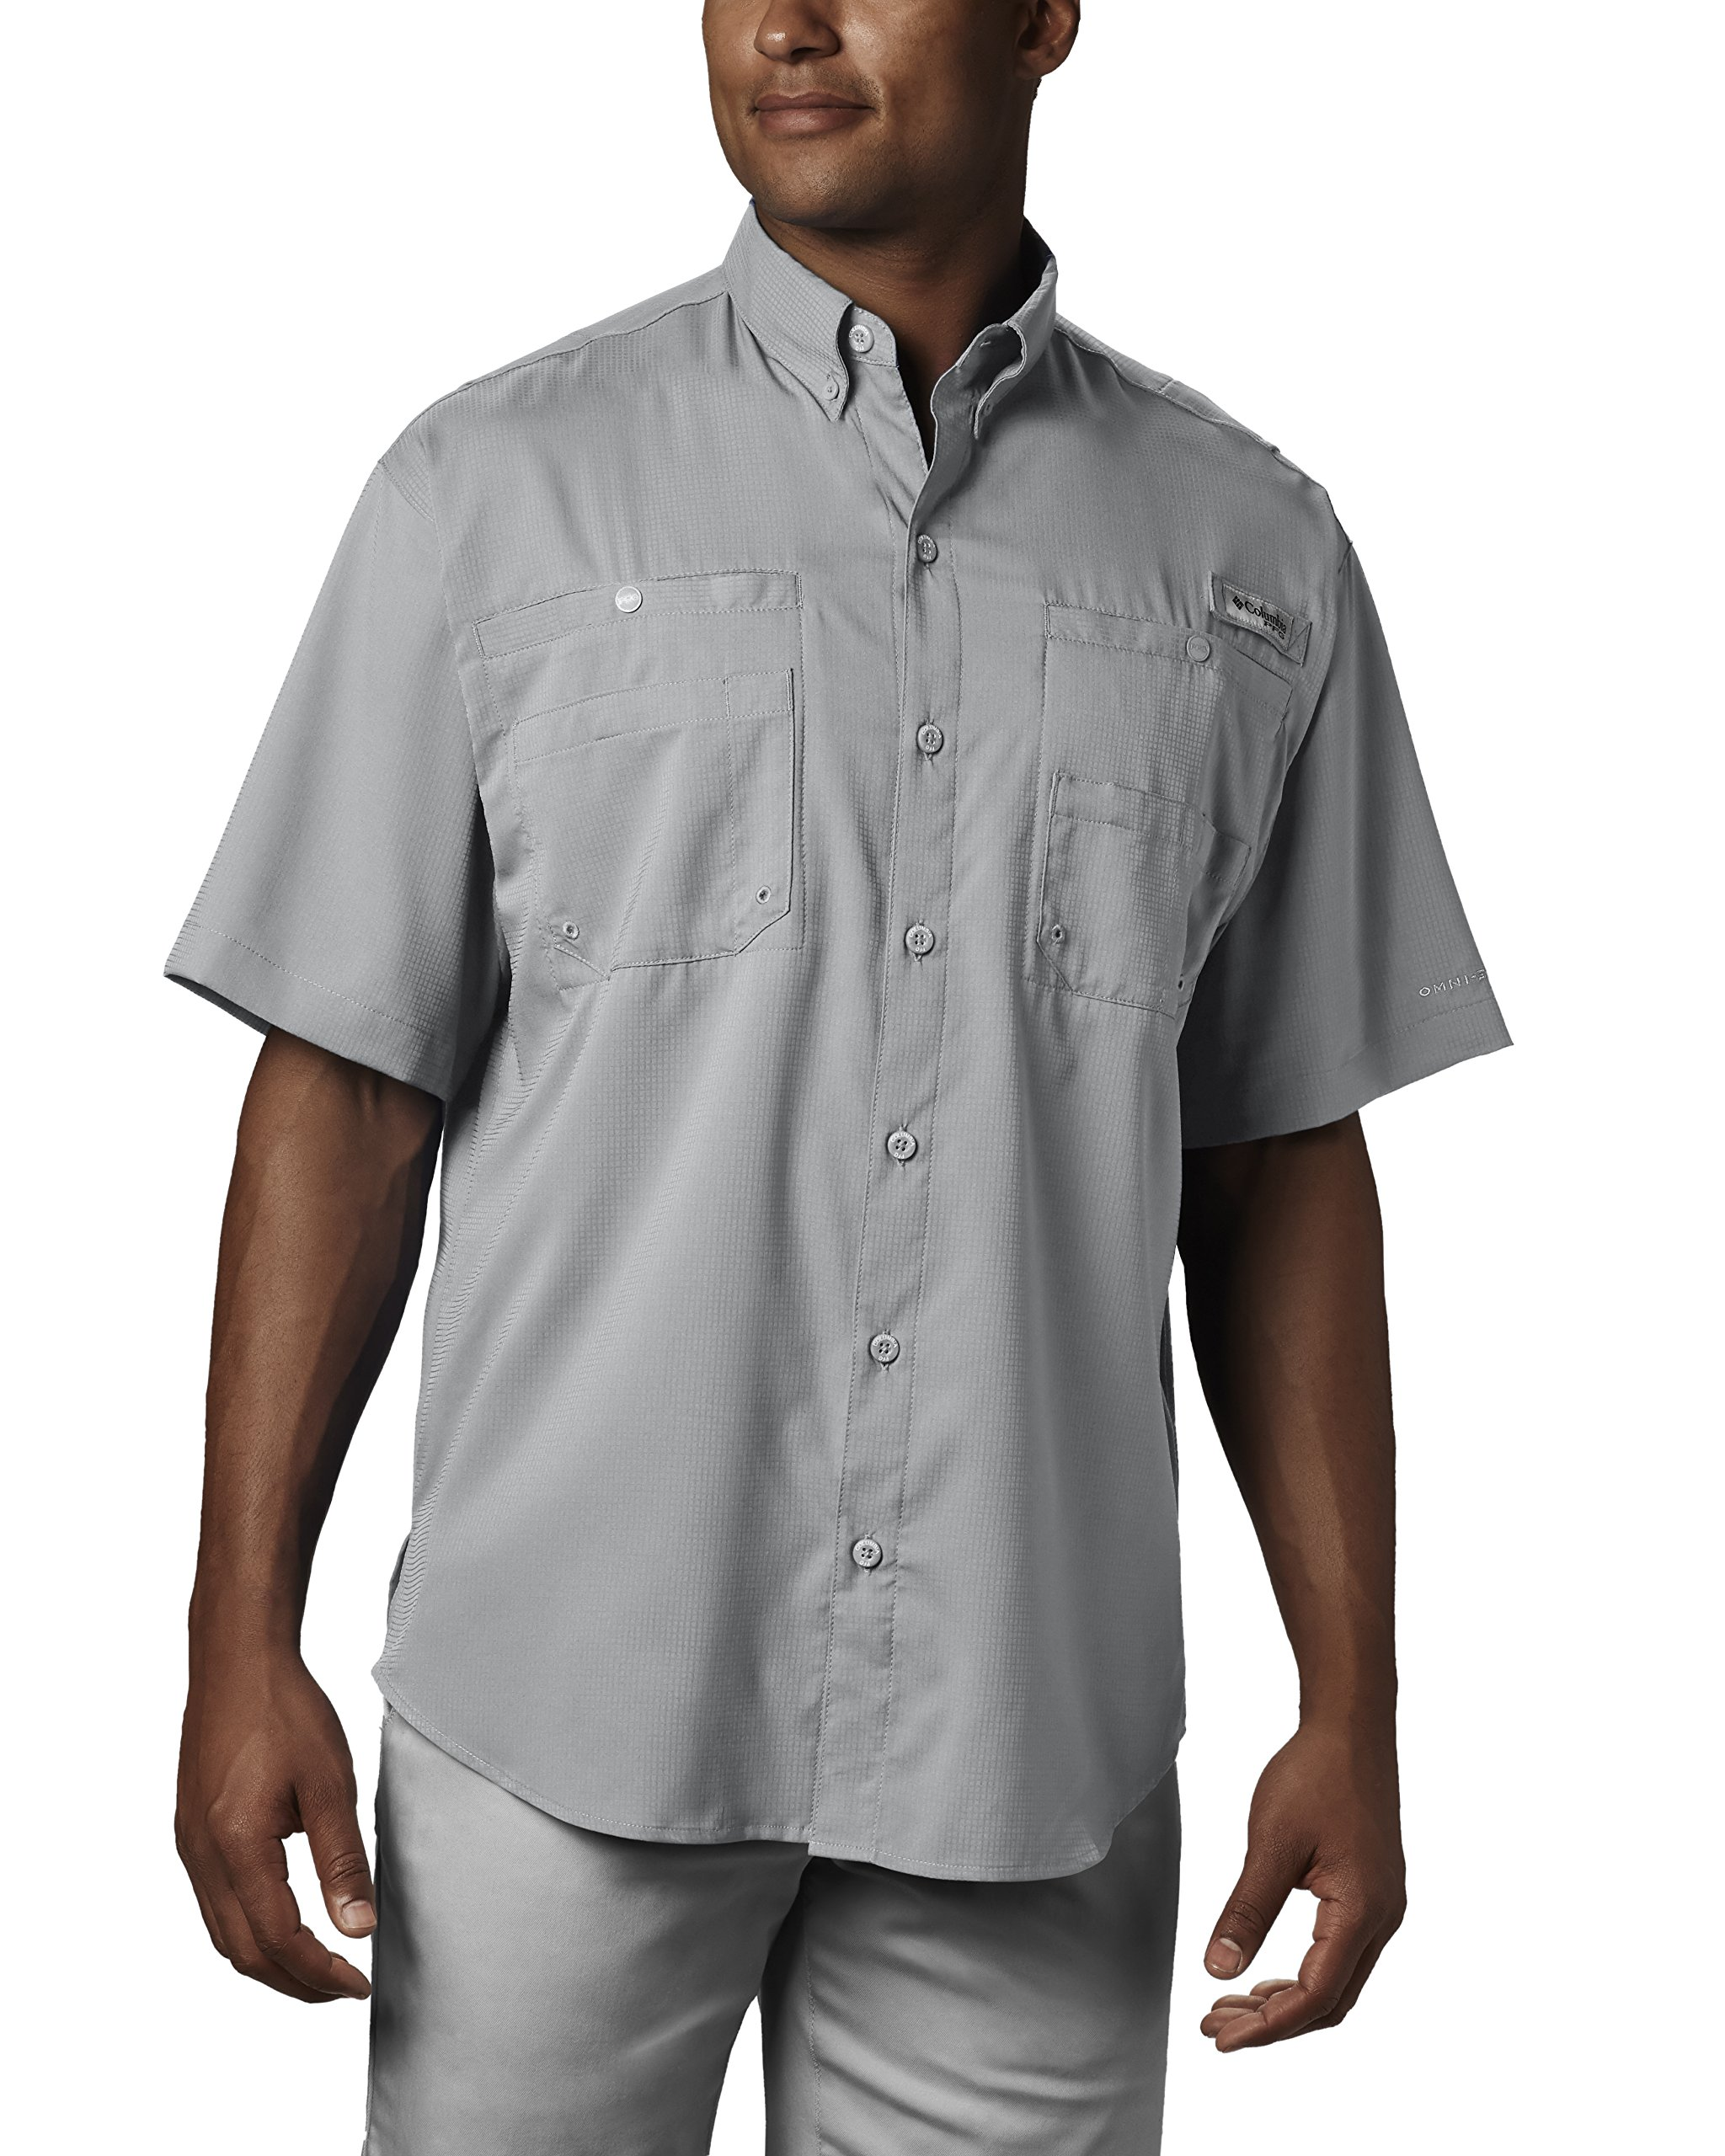 Columbia Men's Tamiami II Short Sleeve Fishing Shirt, Cool Grey, X-Small by Columbia (Image #1)